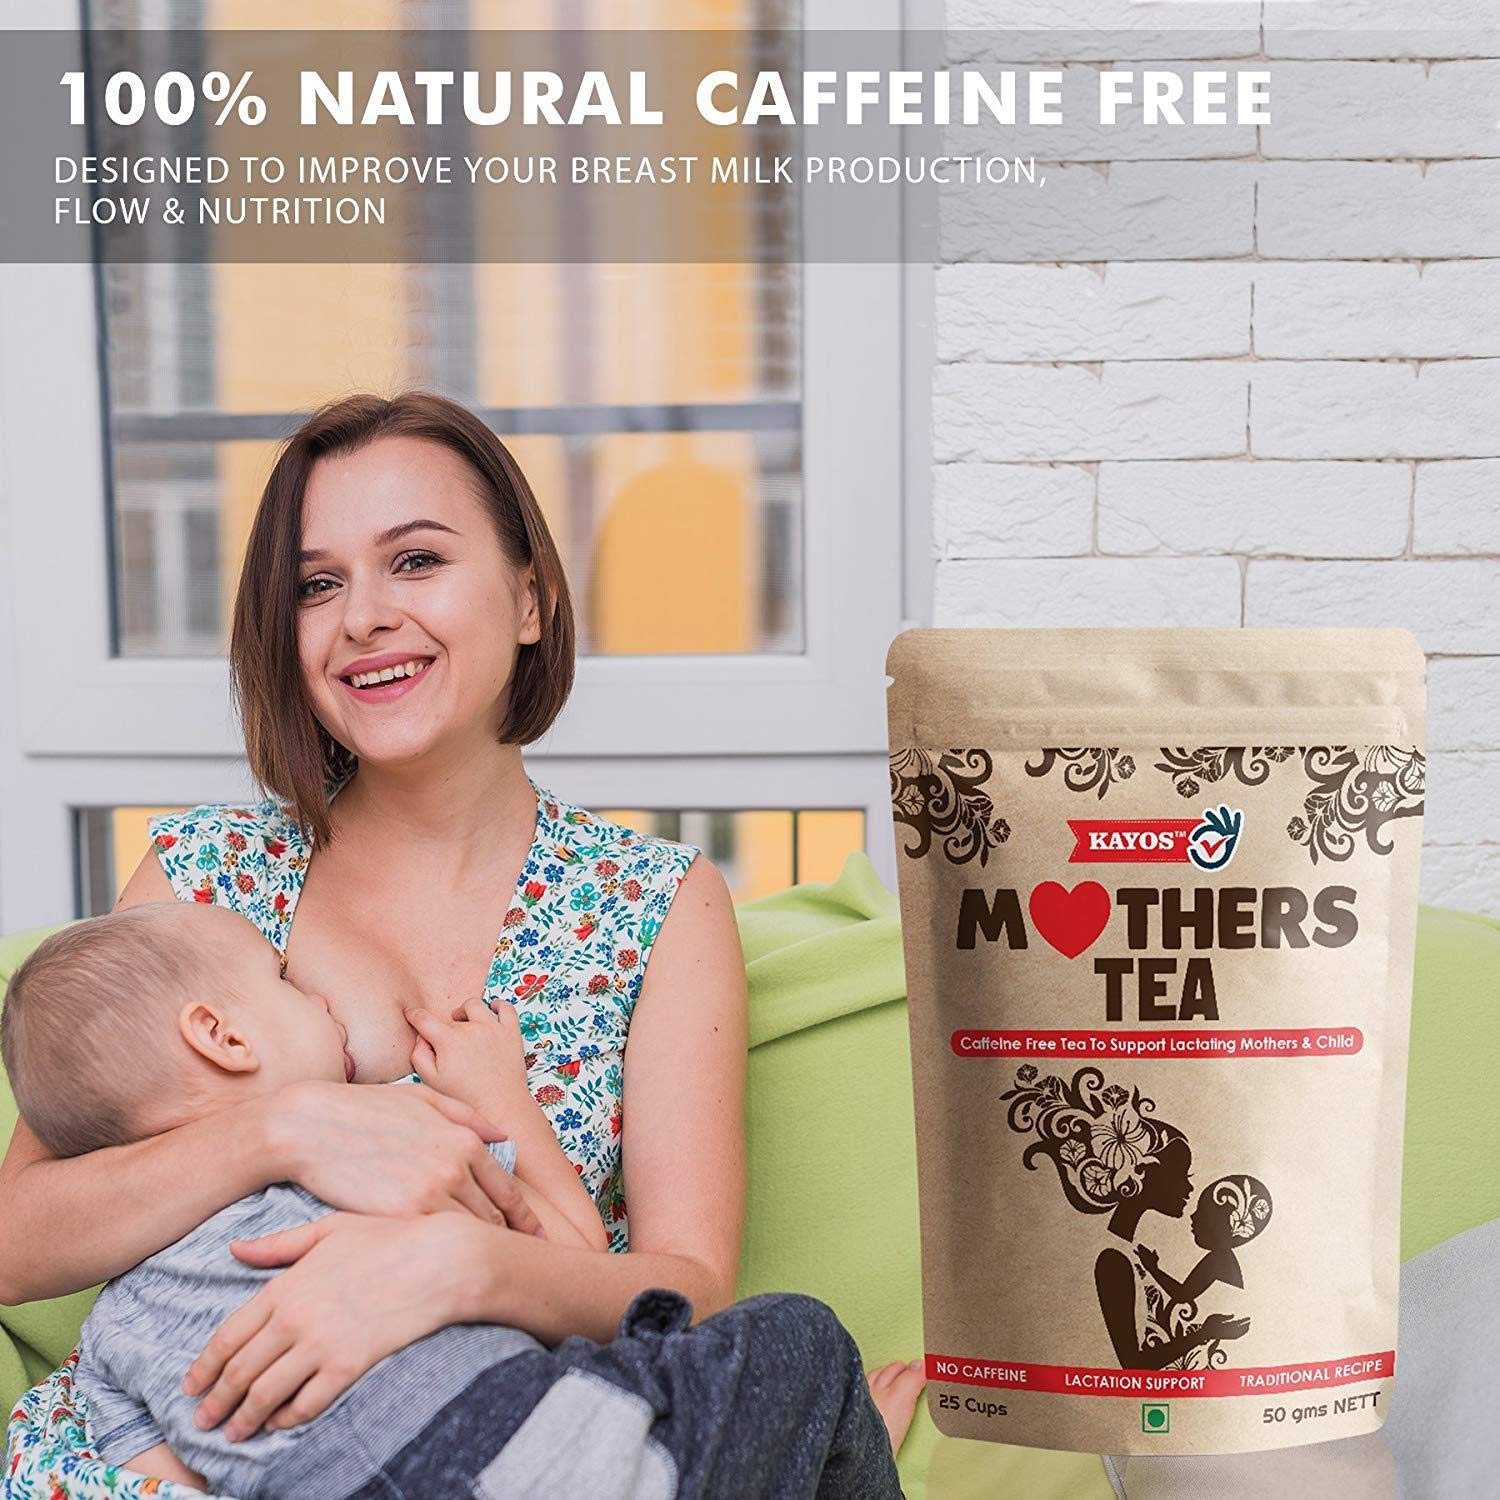 Kayos Mothers Tea for Breastfeeding Mothers – Increase Breast Milk with  Caffeine Free Tea to Support Lactating Mothers & Child with Fenugreek -  50g: ...